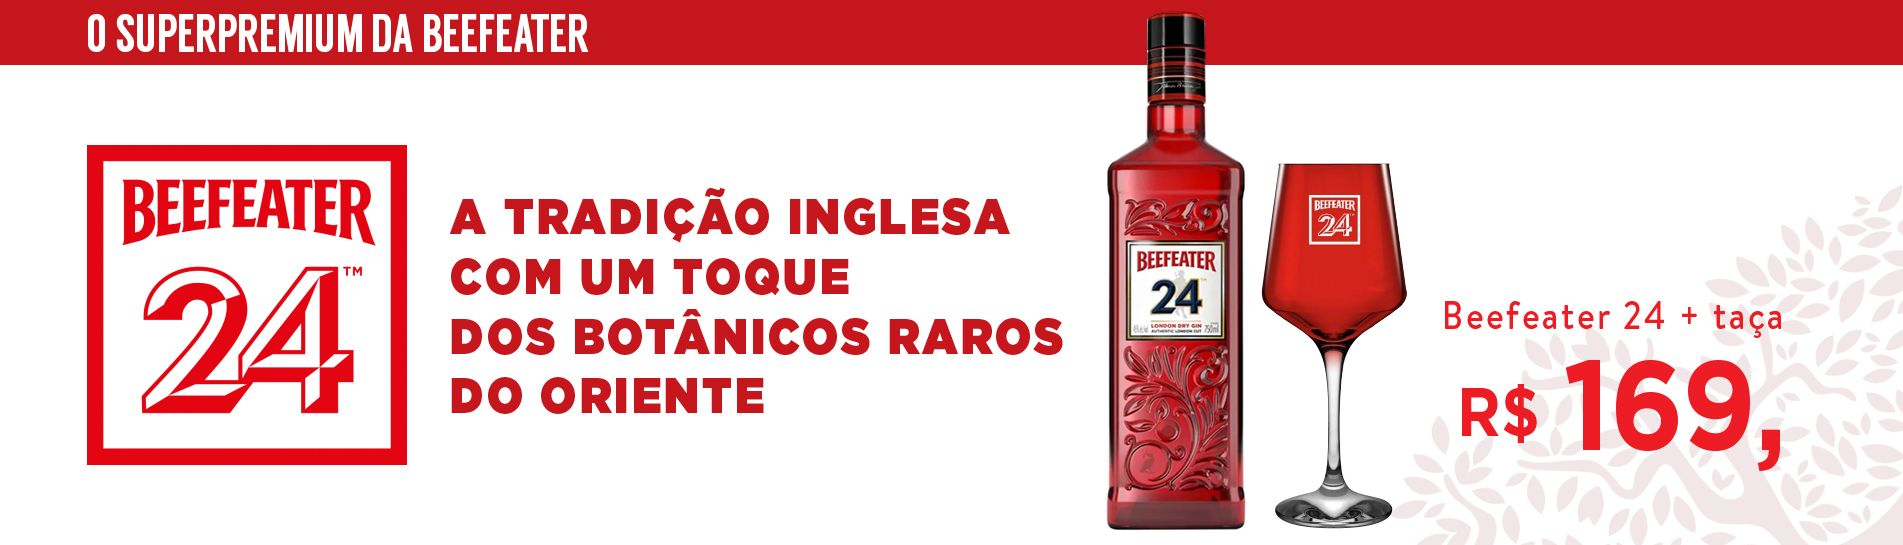 Promo Beefeater 24